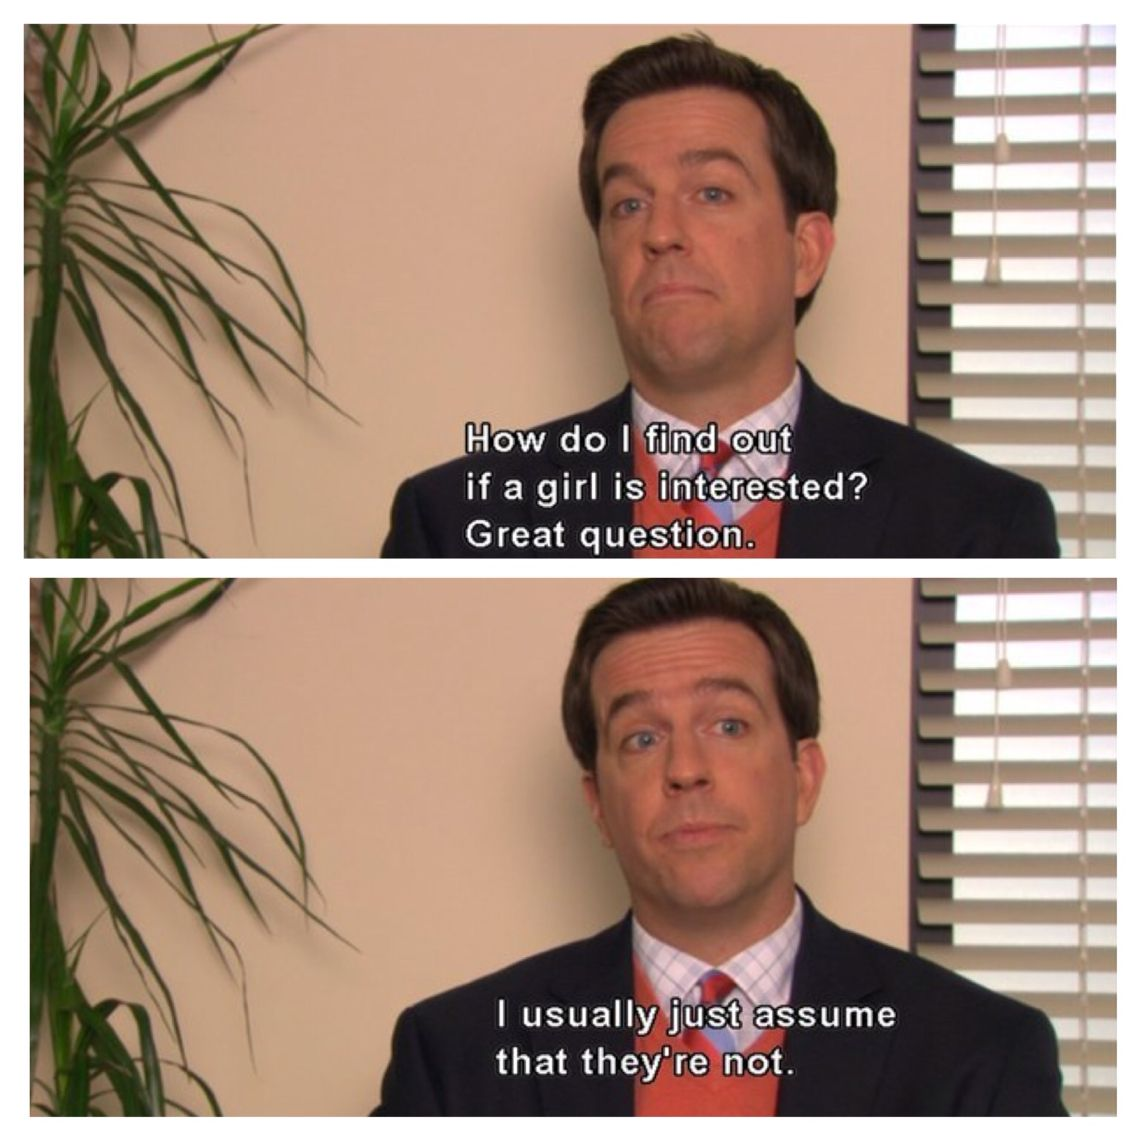 20 Signs You Re Andy Bernard From The Office When It Comes To Dating The Office Show Office Jokes Andy Bernard